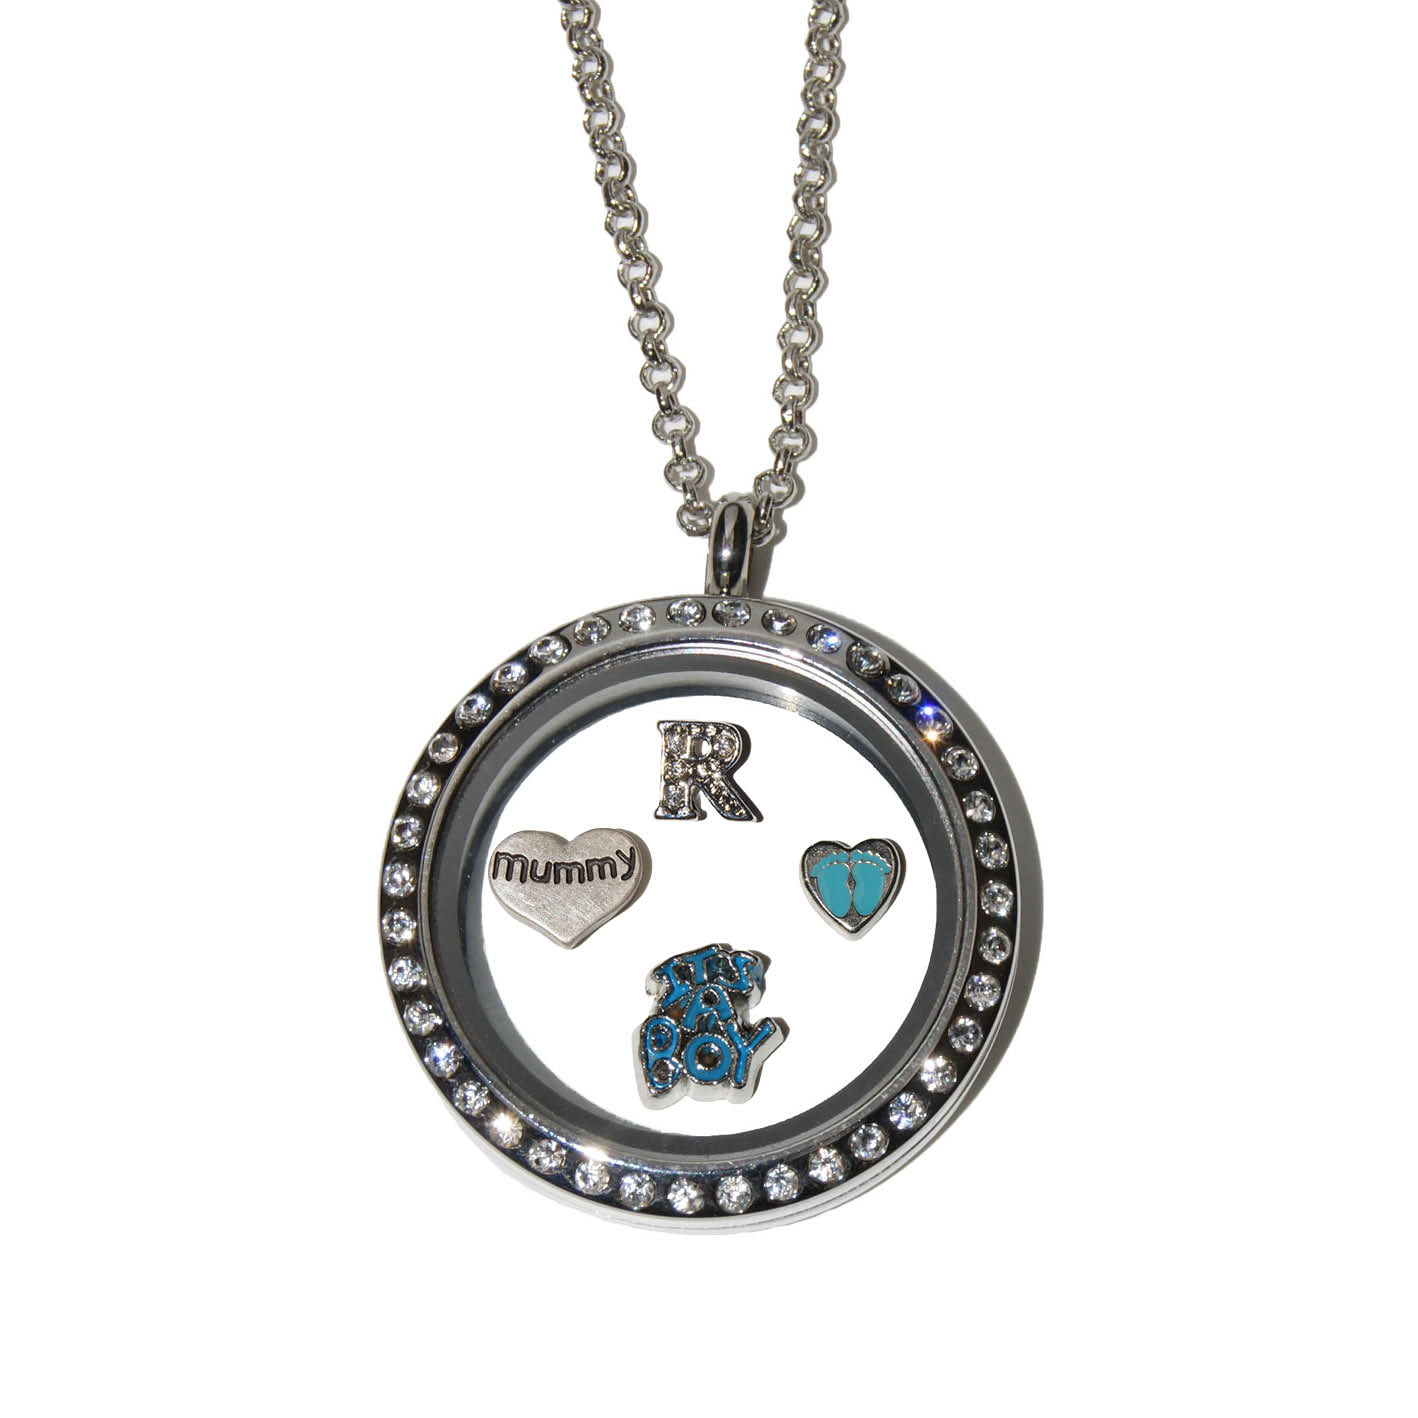 baby and a earrings or keep valuable how holds it wear my new lockets show gift fotor to someone from custom person locket each message unicorn connected if with resonates you their is products